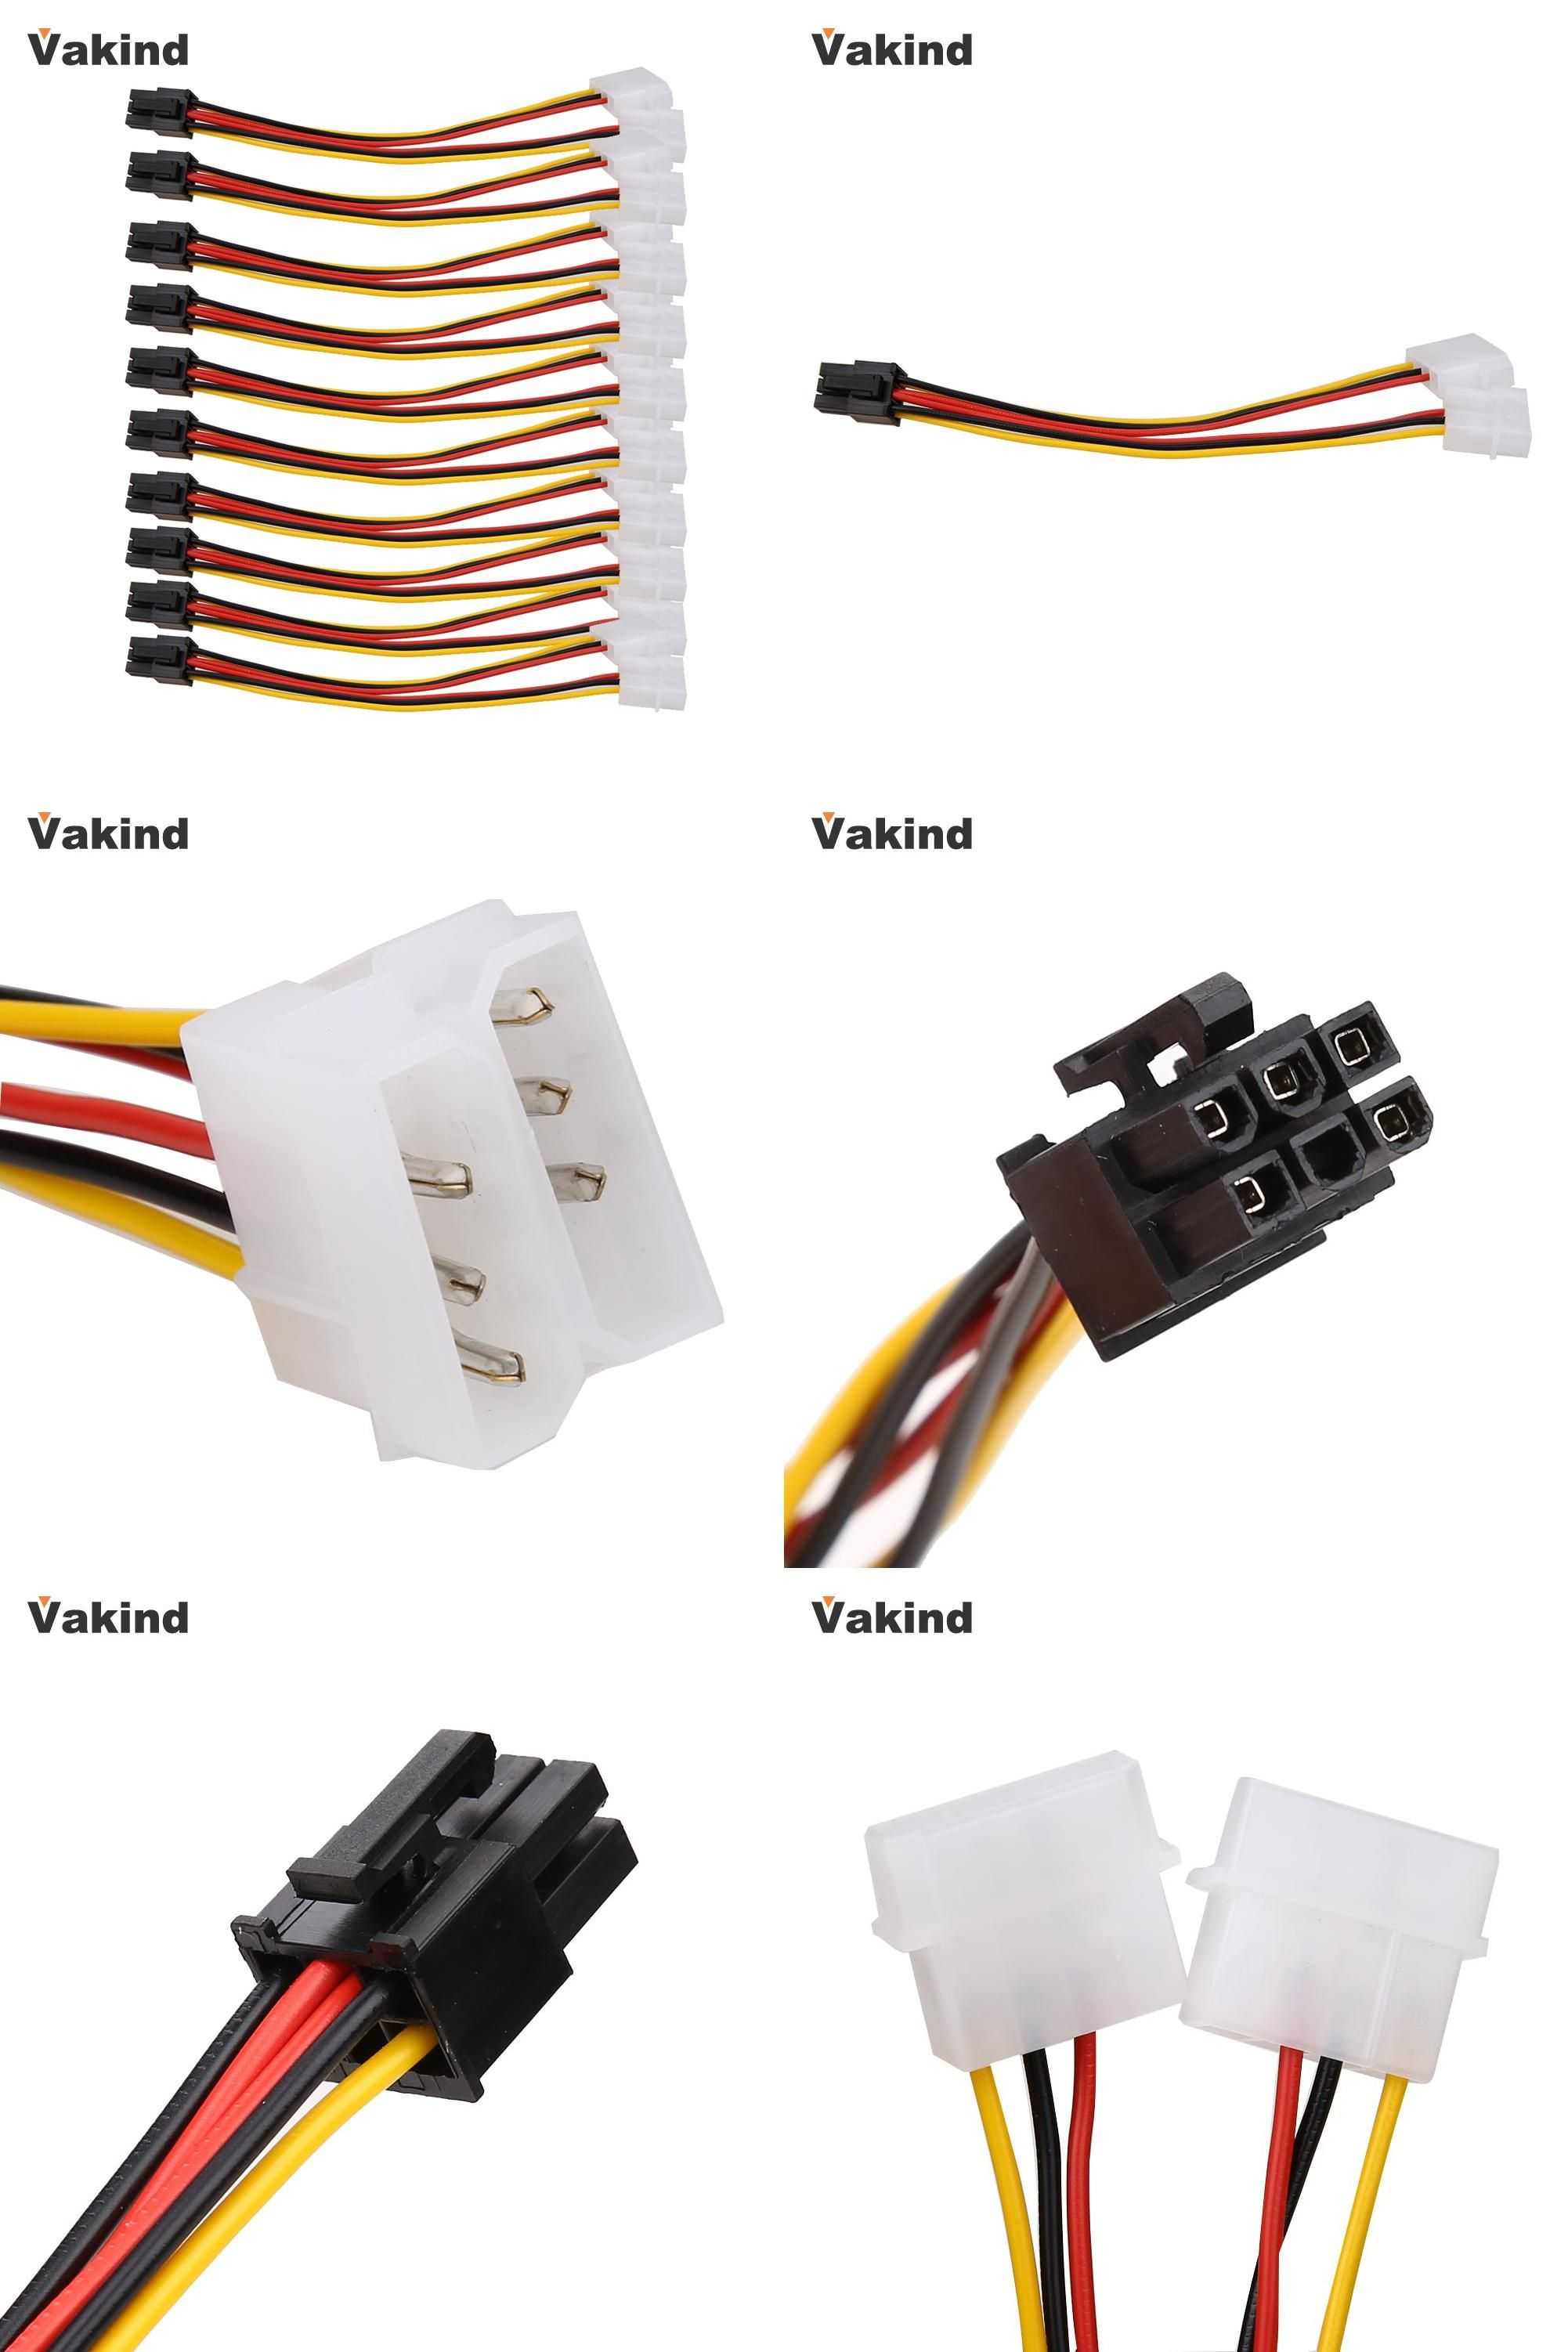 Visit to Buy] 10PCS Molex 4 Pin to PCI-E PCI Express 6 Pin Power ...